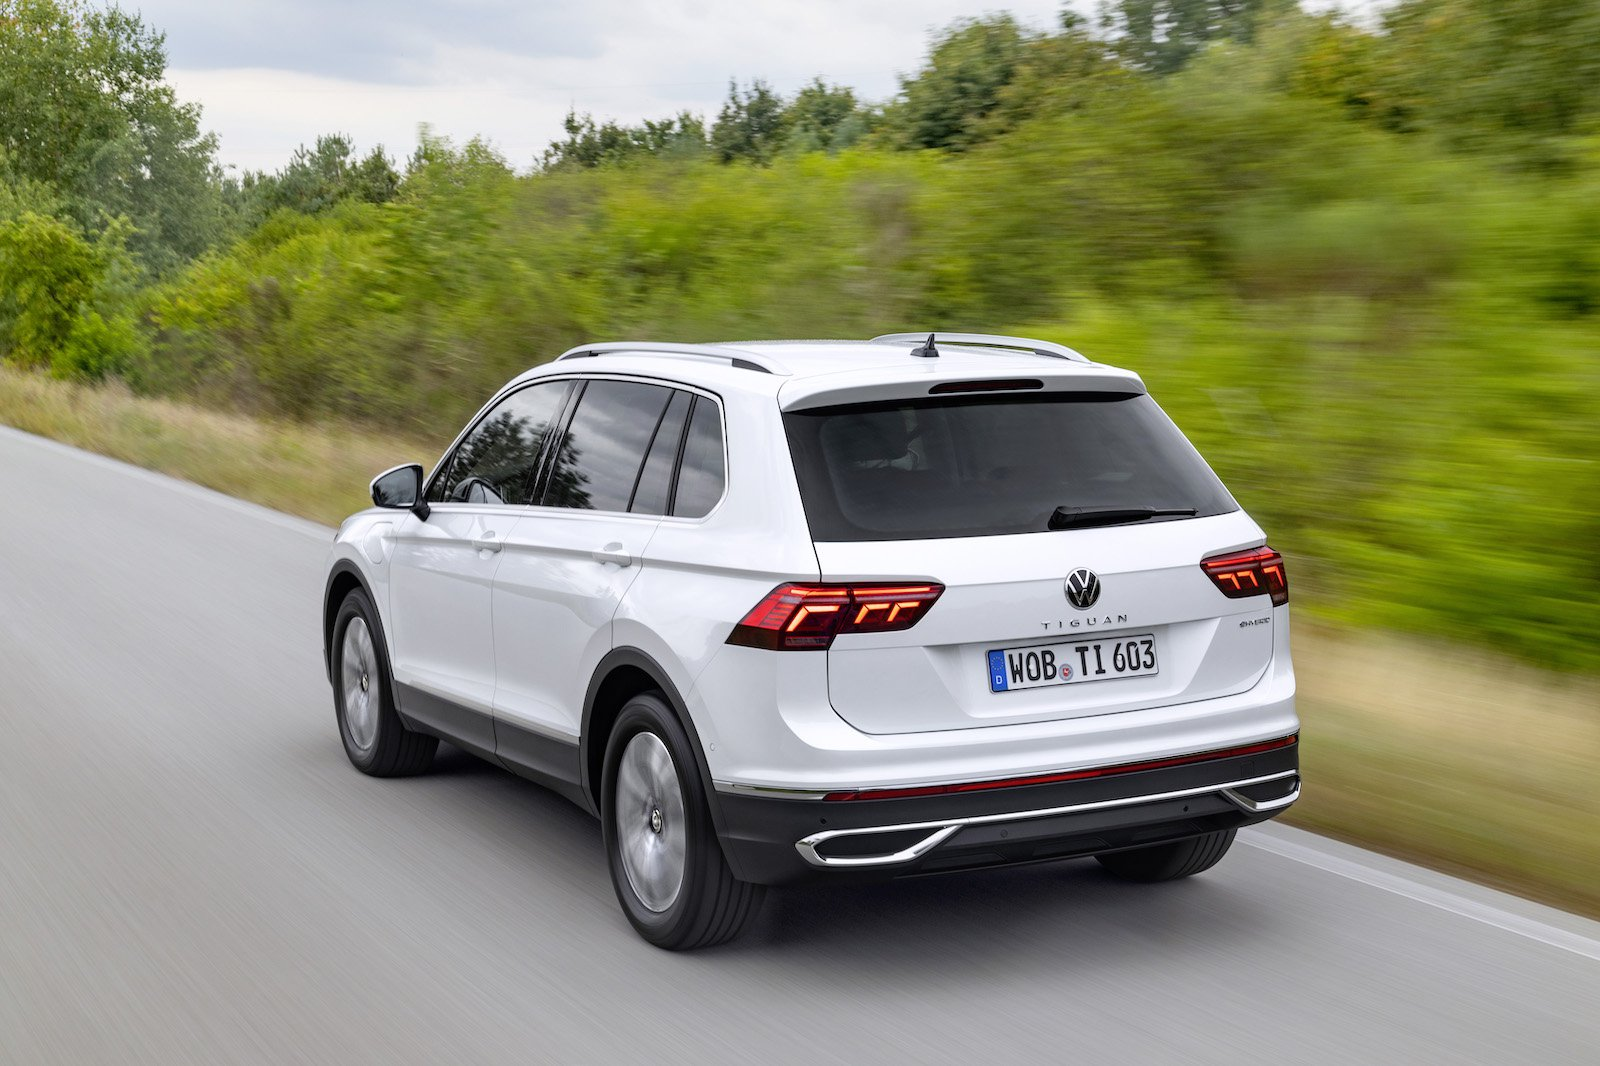 2021 volkswagen tiguan ehybrid review: price, specs and